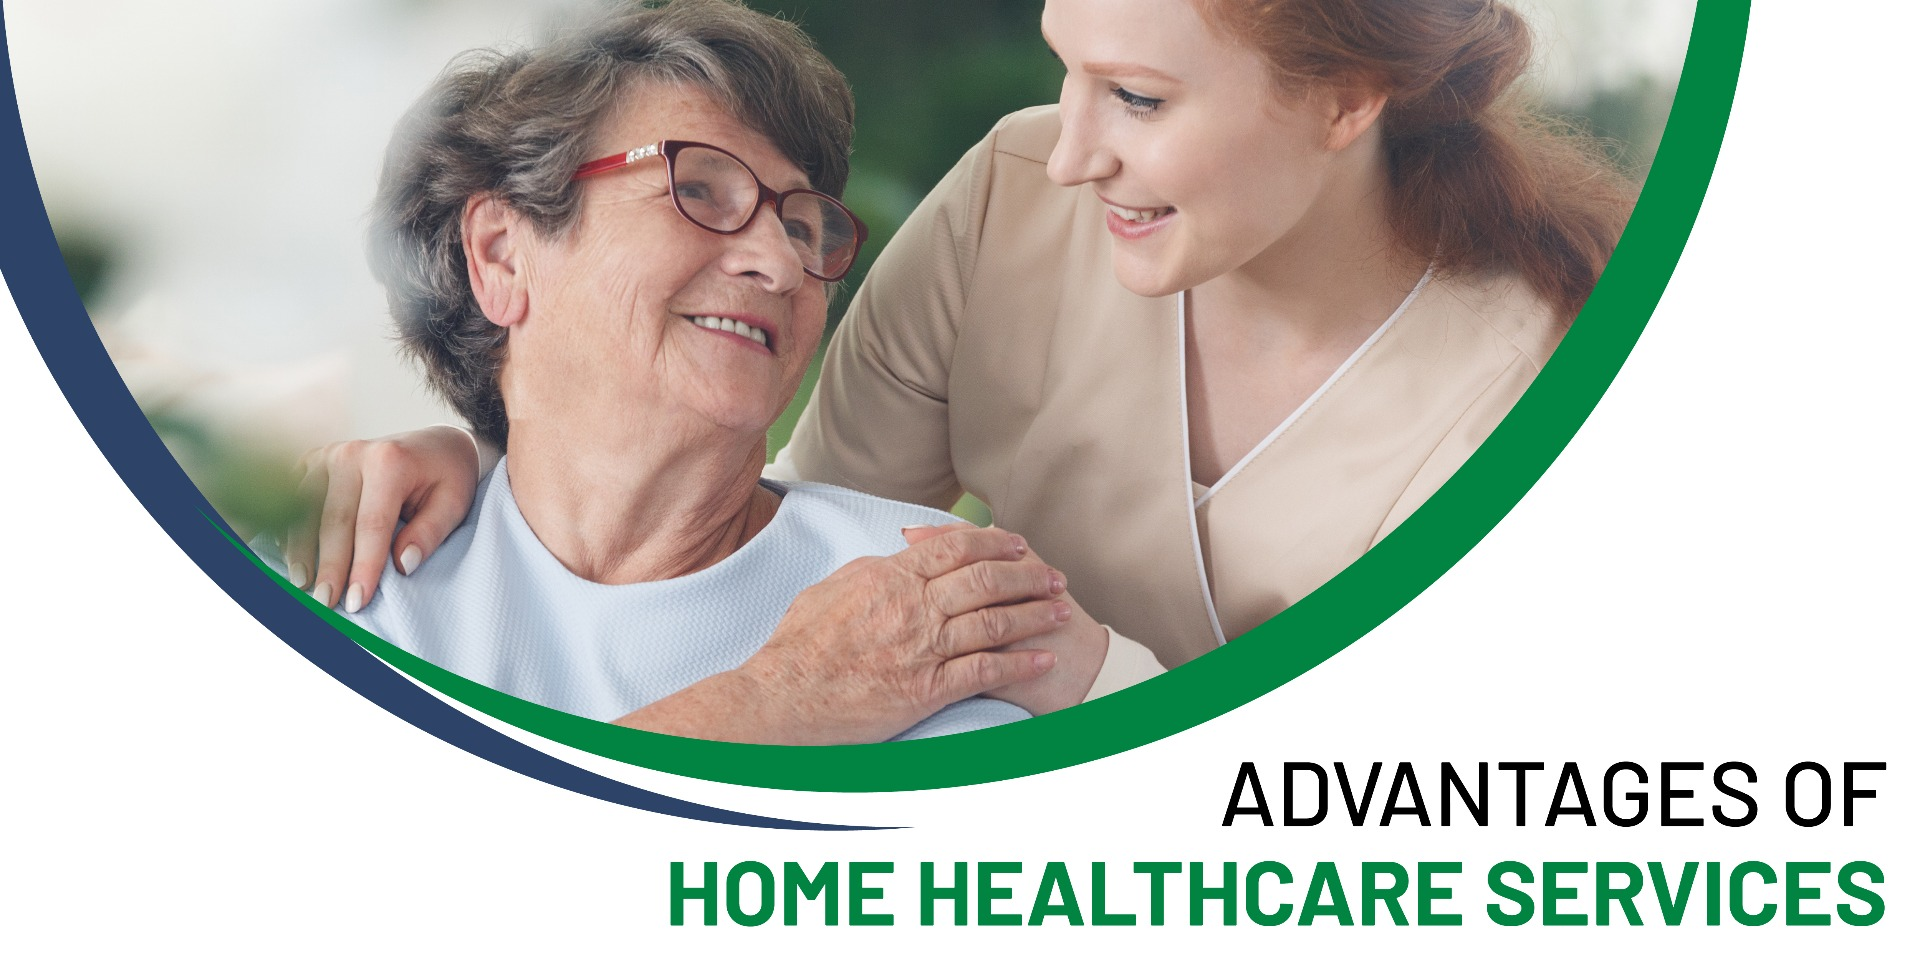 Advantages of home healthcare services